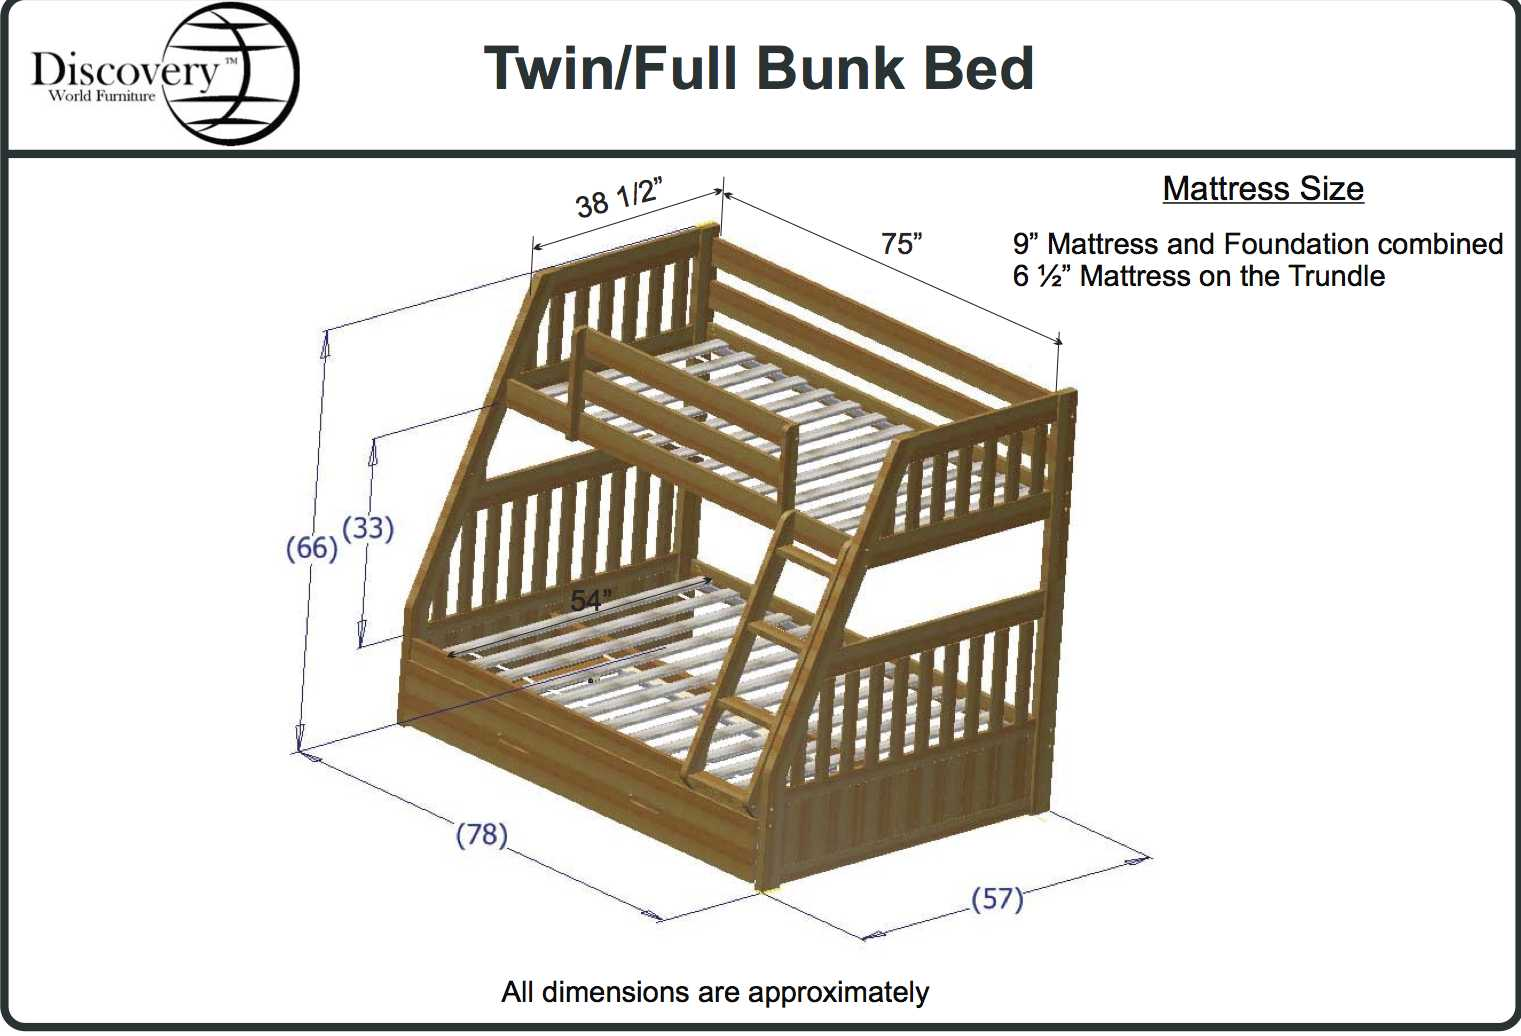 Bunk Bed Dimensions Twin Bunk Bed Dimensions Roole